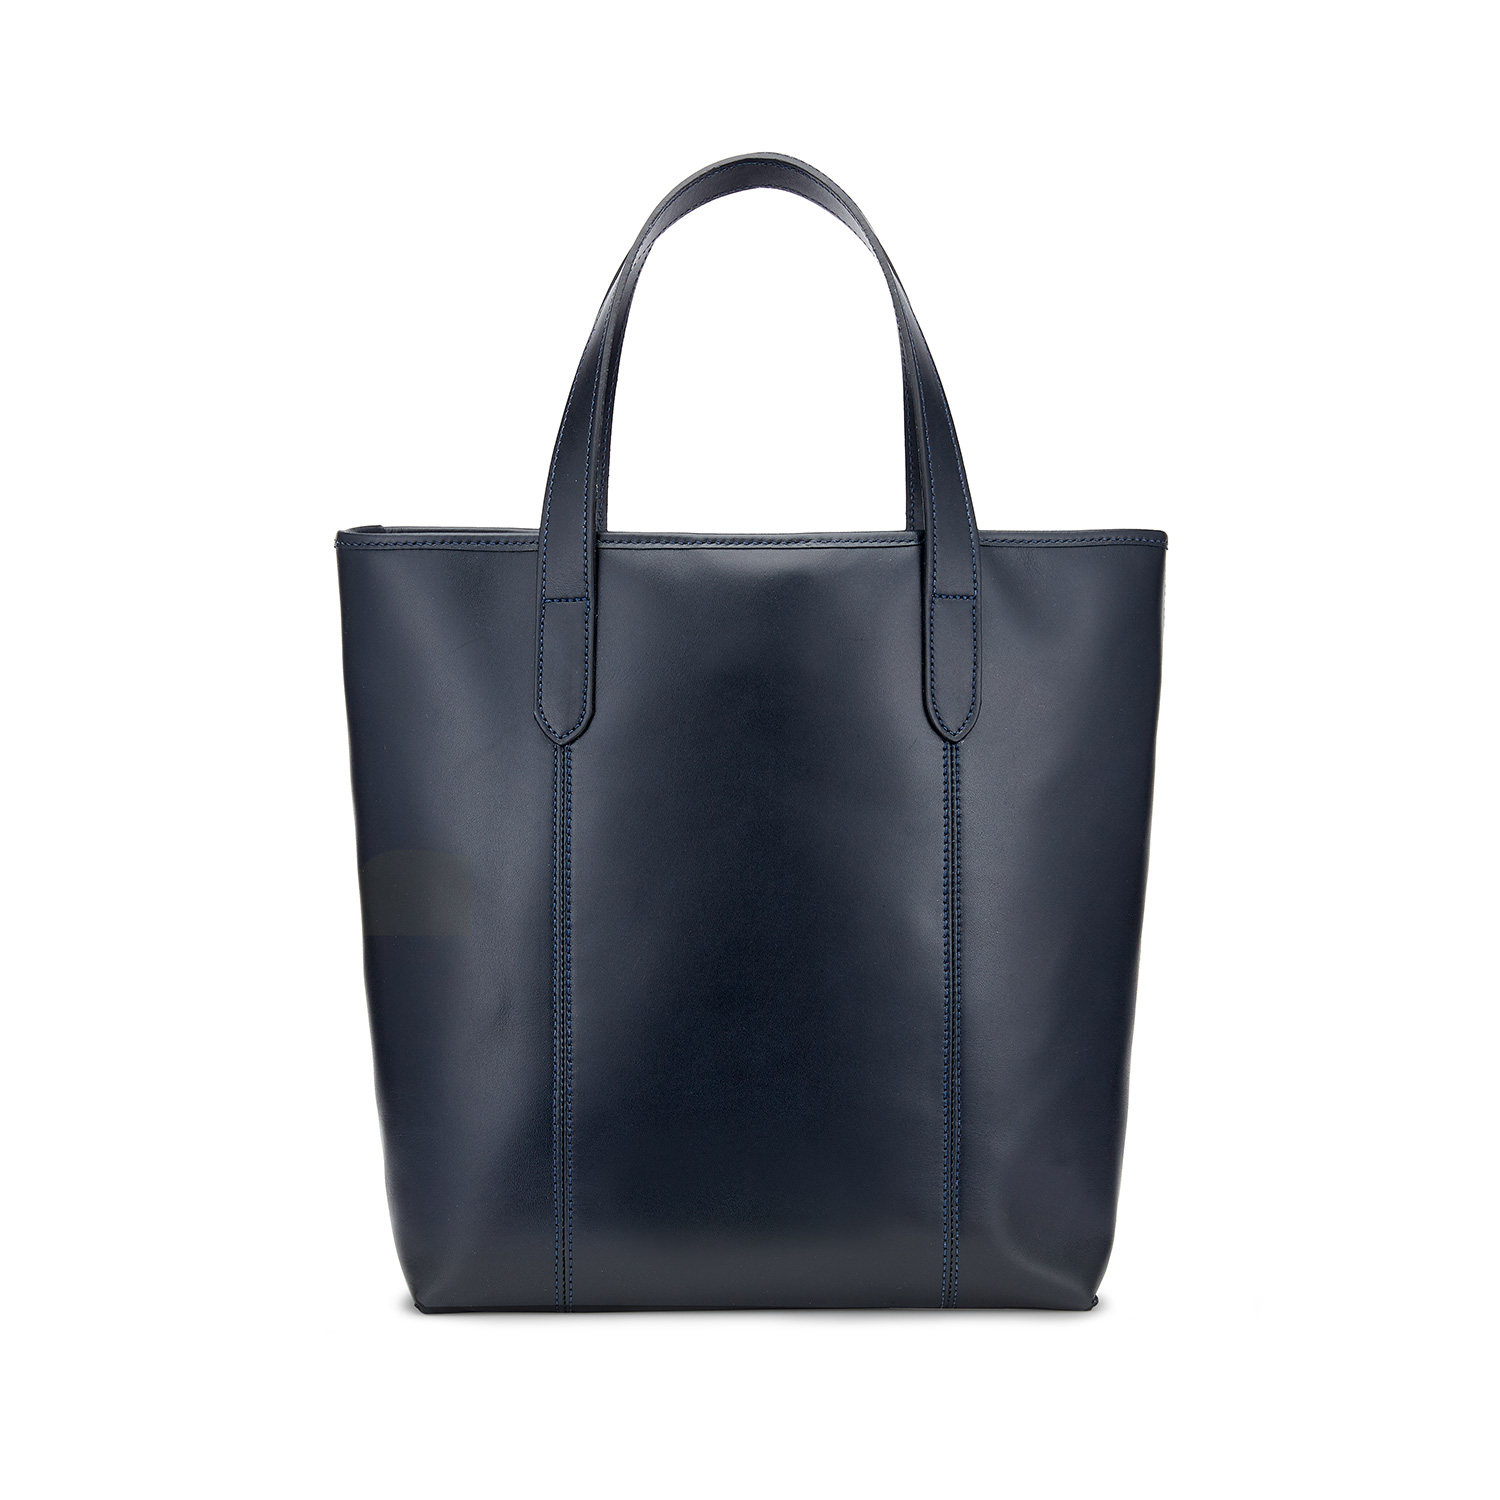 Tusting Leather Chelsea Tote Bag in Navy Rear